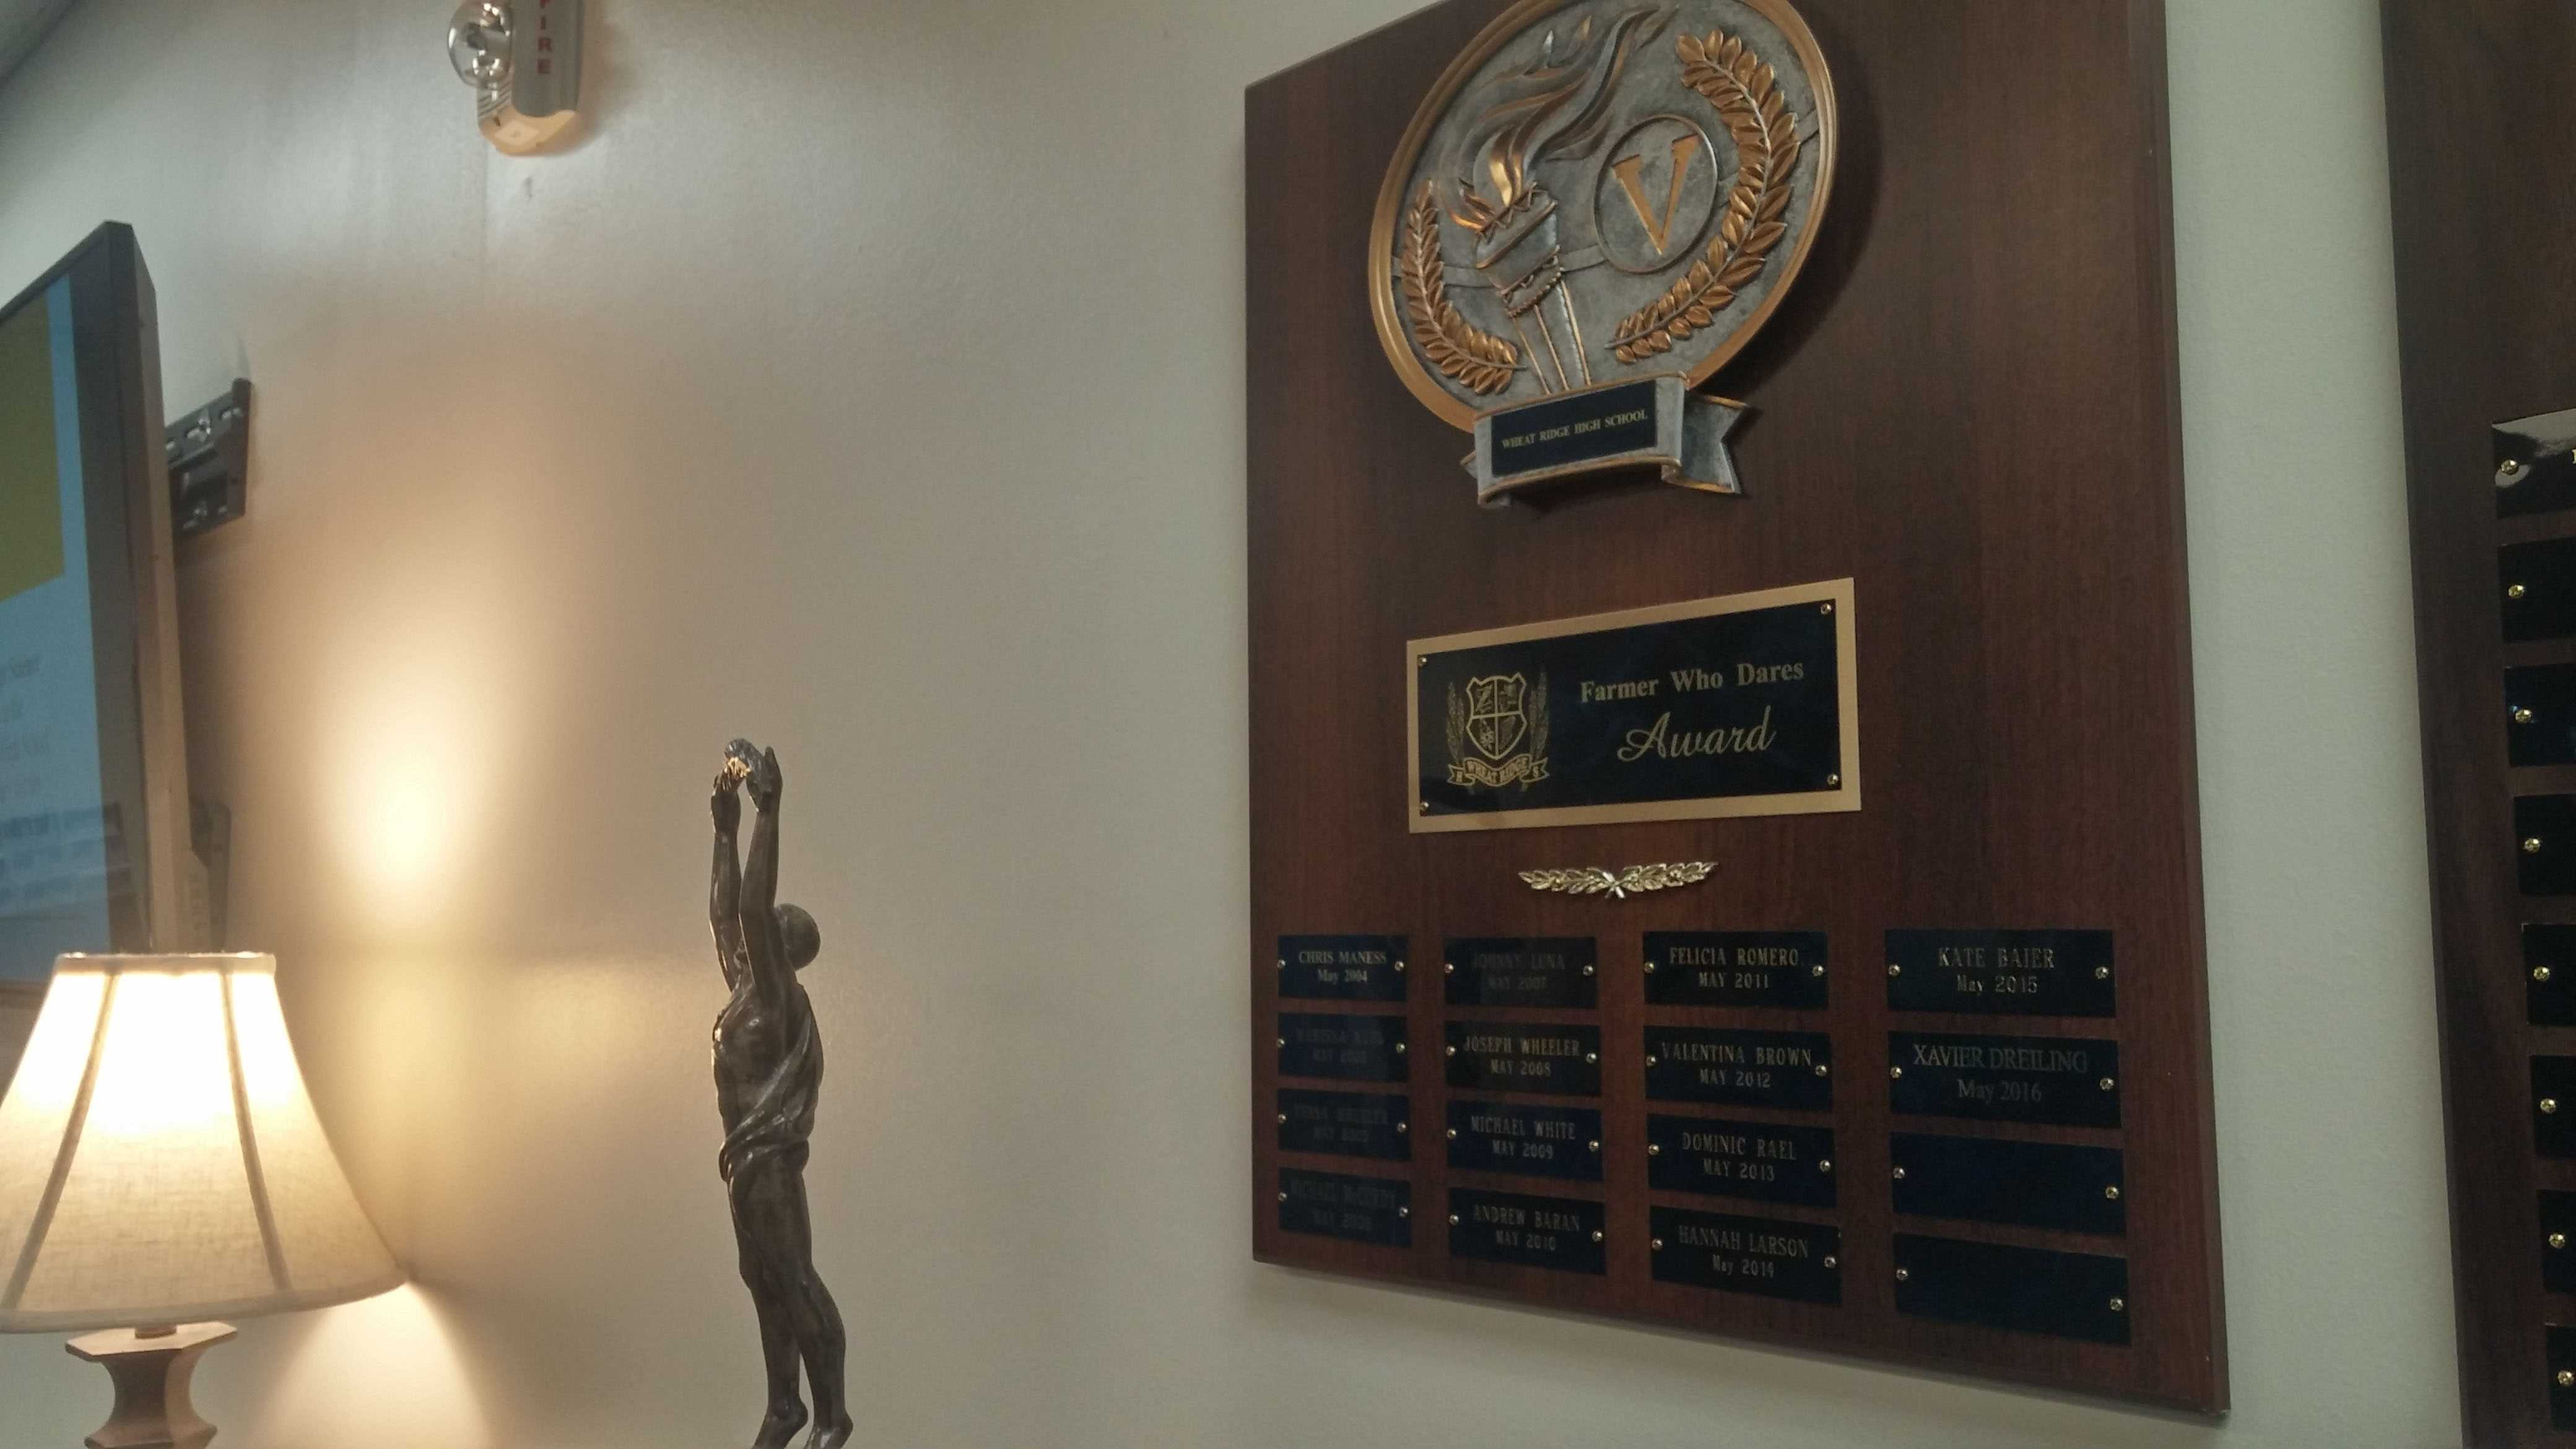 The plaque in the main office that lists past recipients of the Farmer Who Dares Award By Rachel Vigil